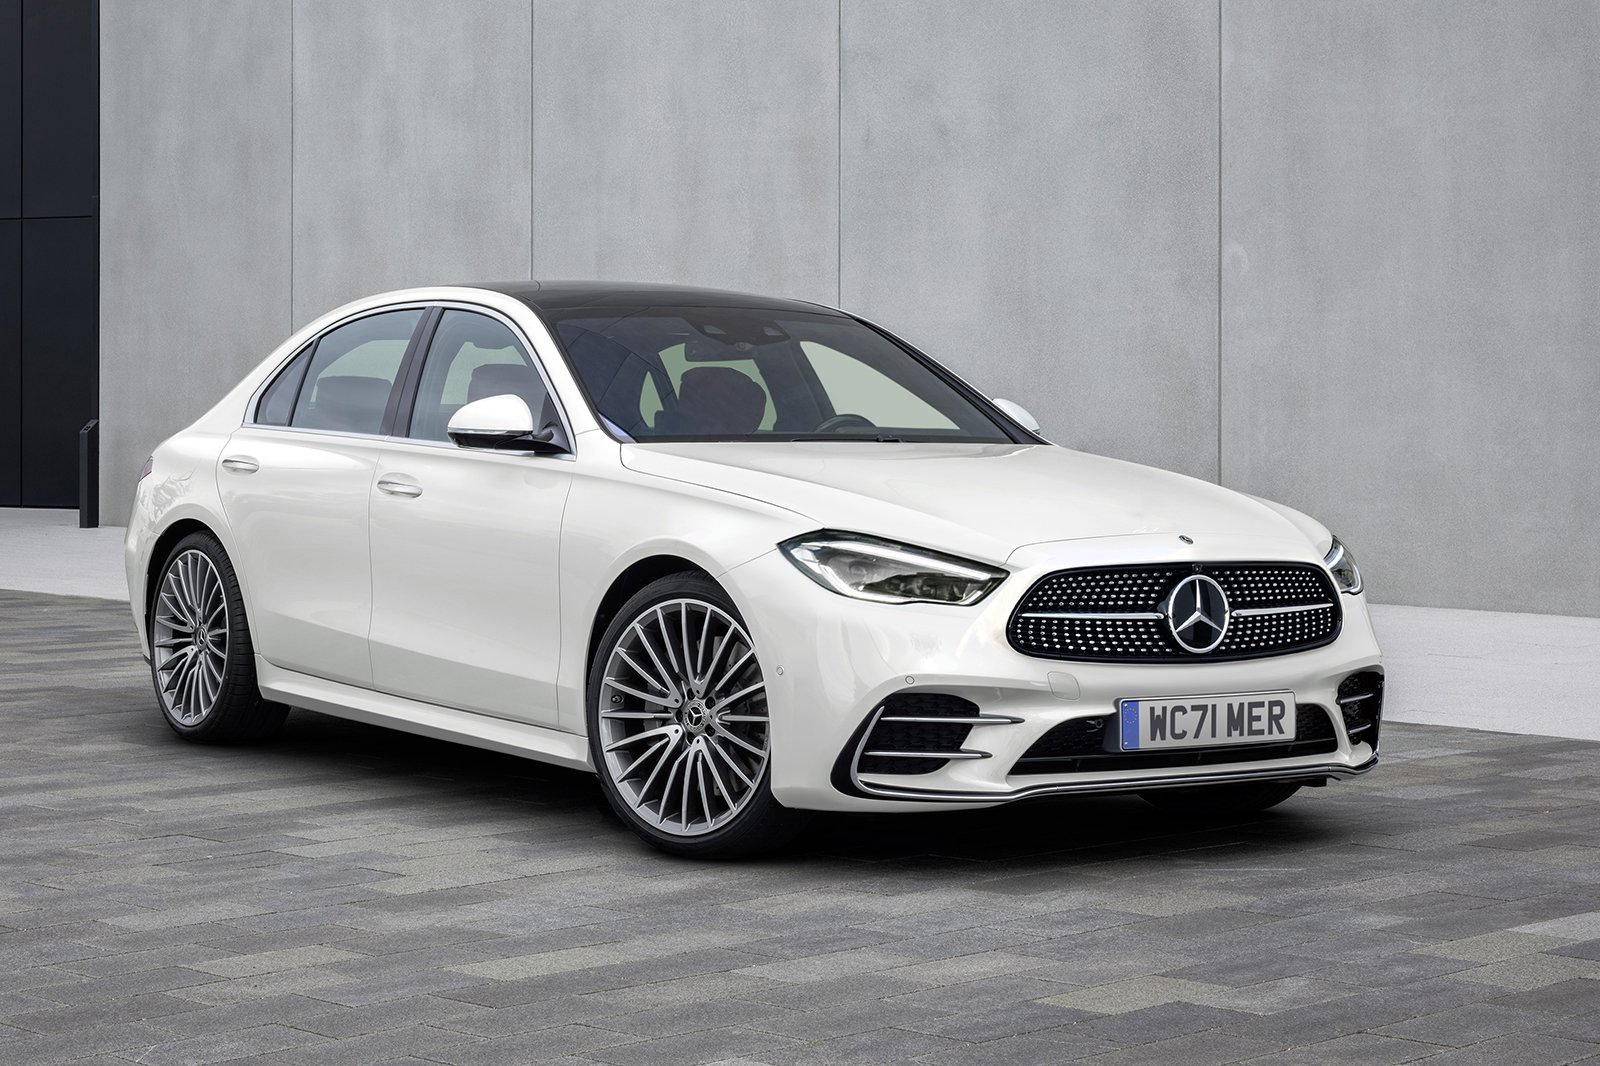 2021 Mercedes C-Class with background